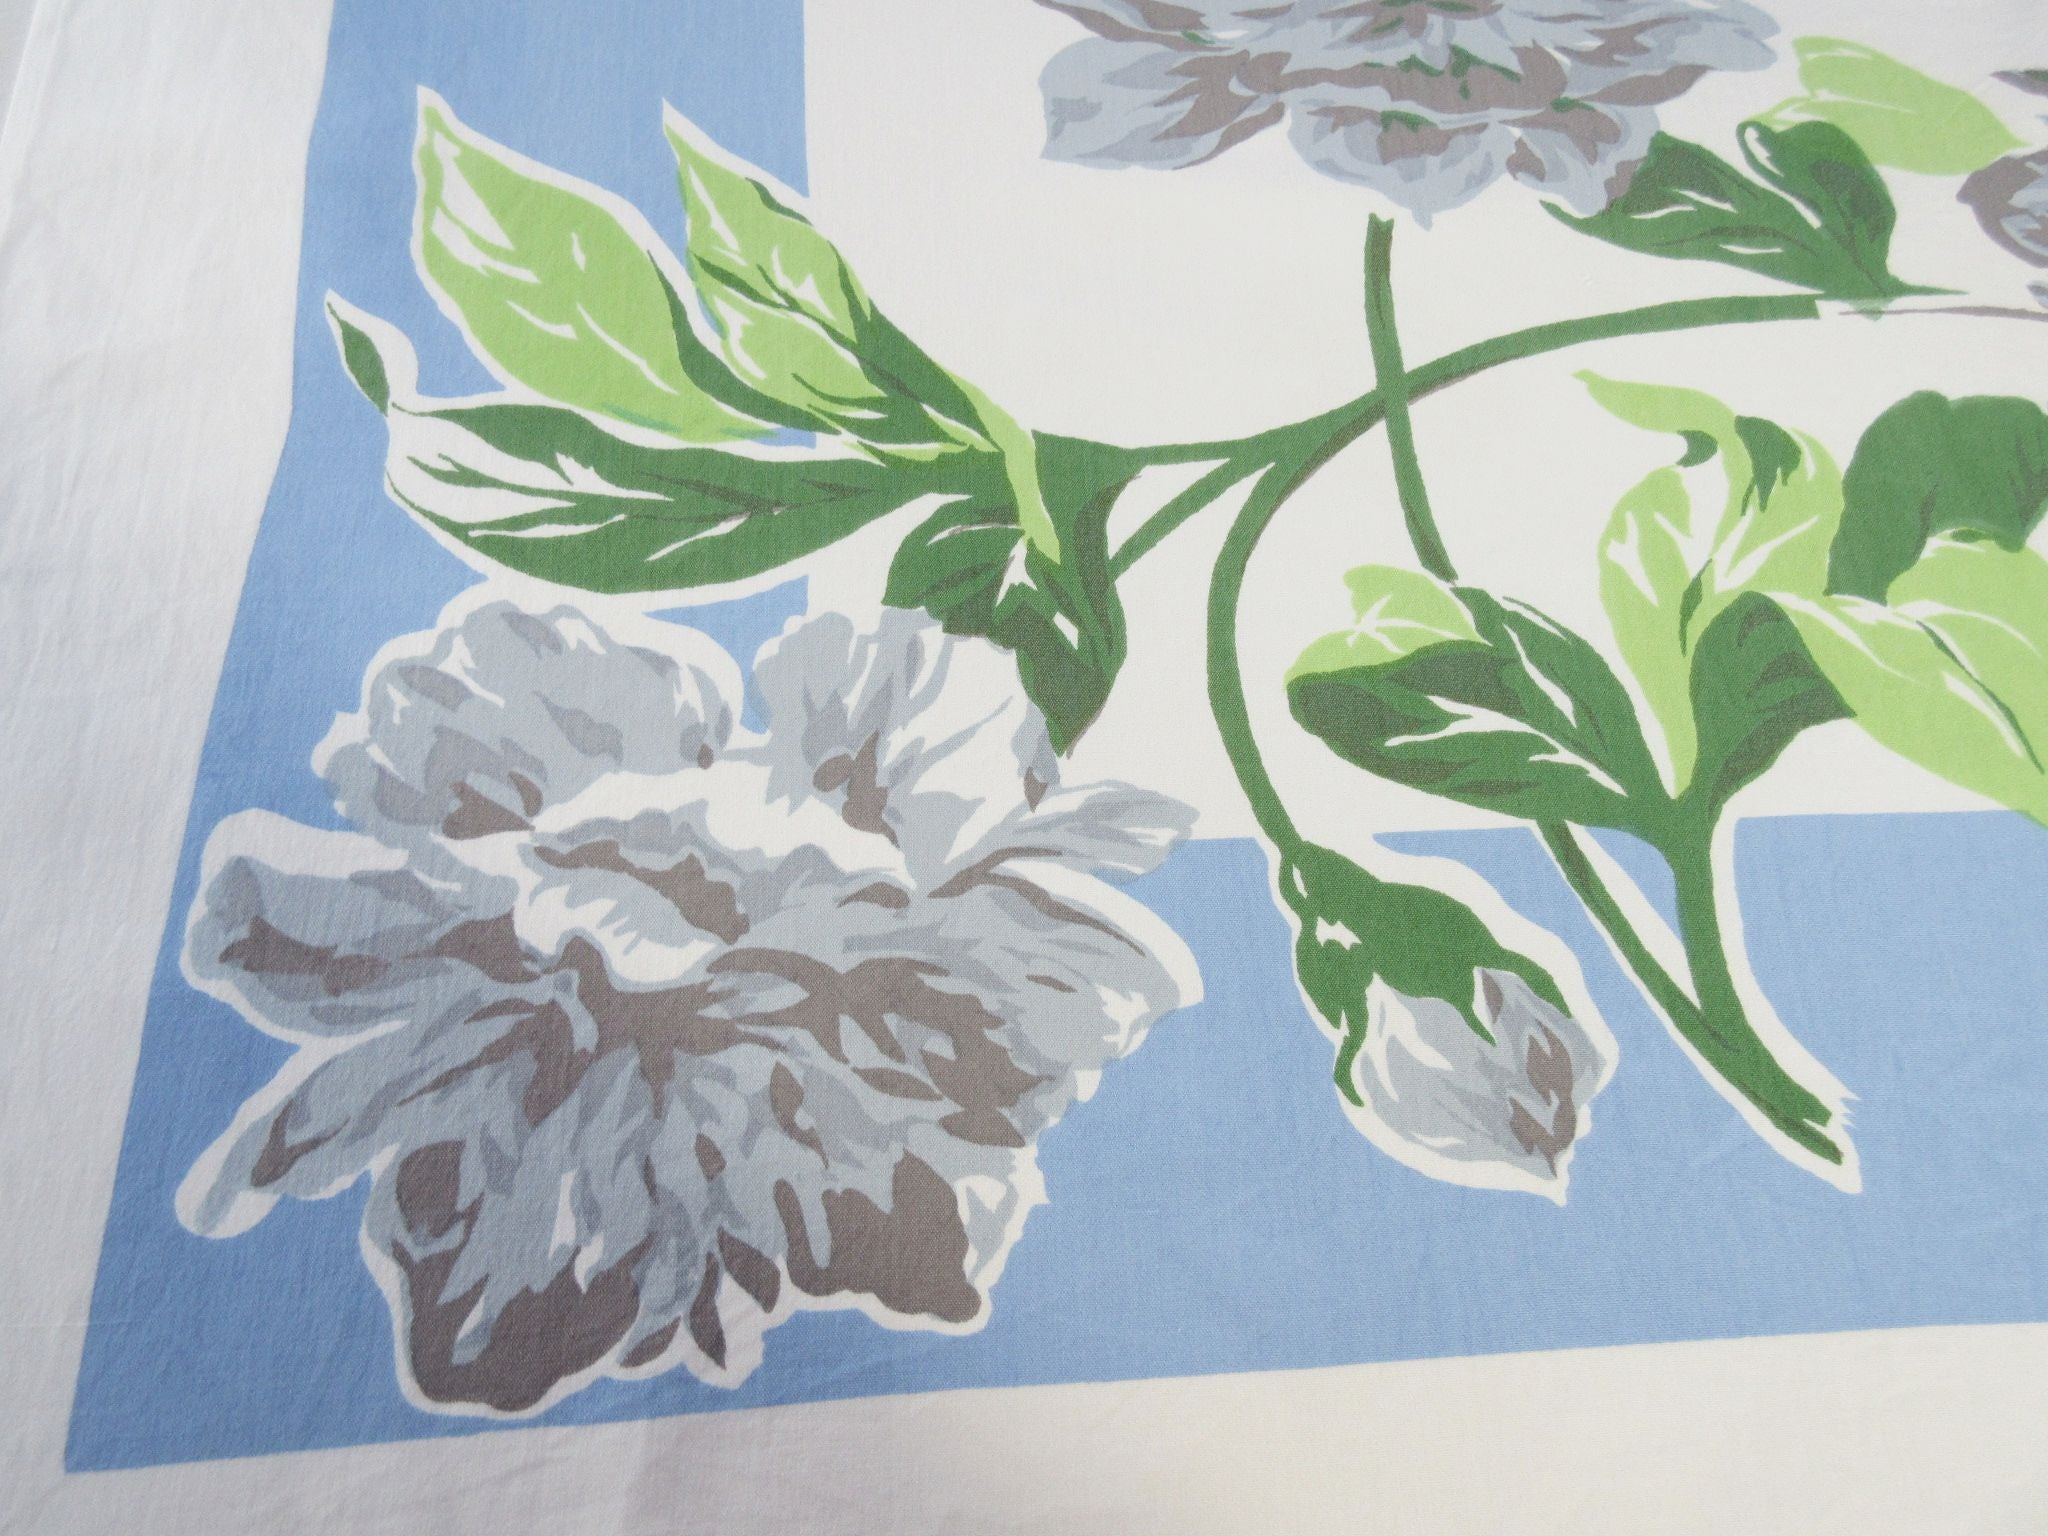 Giant Gray Peonies on Blue Floral Vintage Printed Tablecloth (52 X 46)